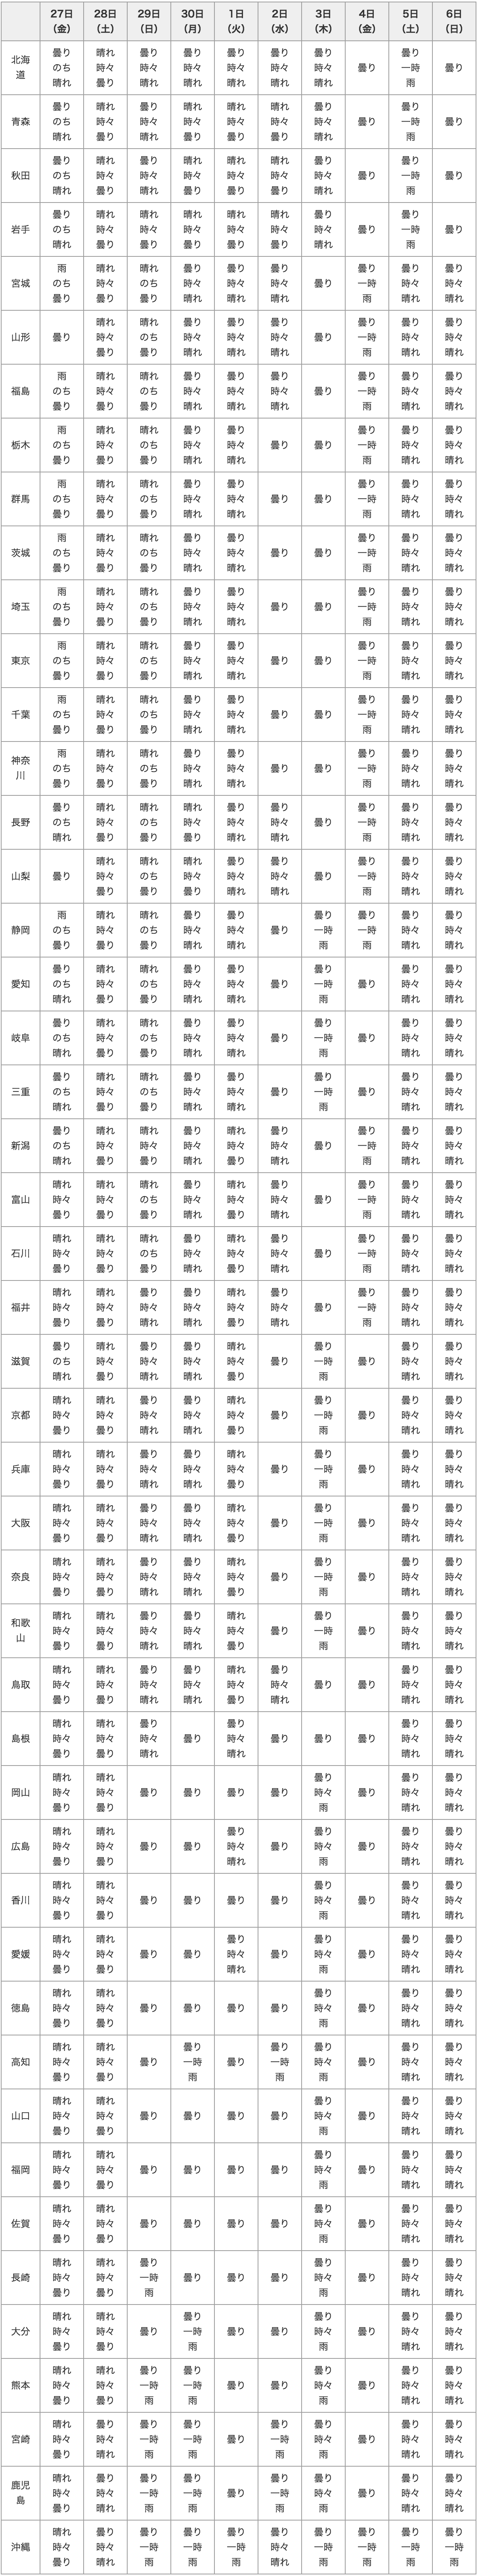 20120426_table1